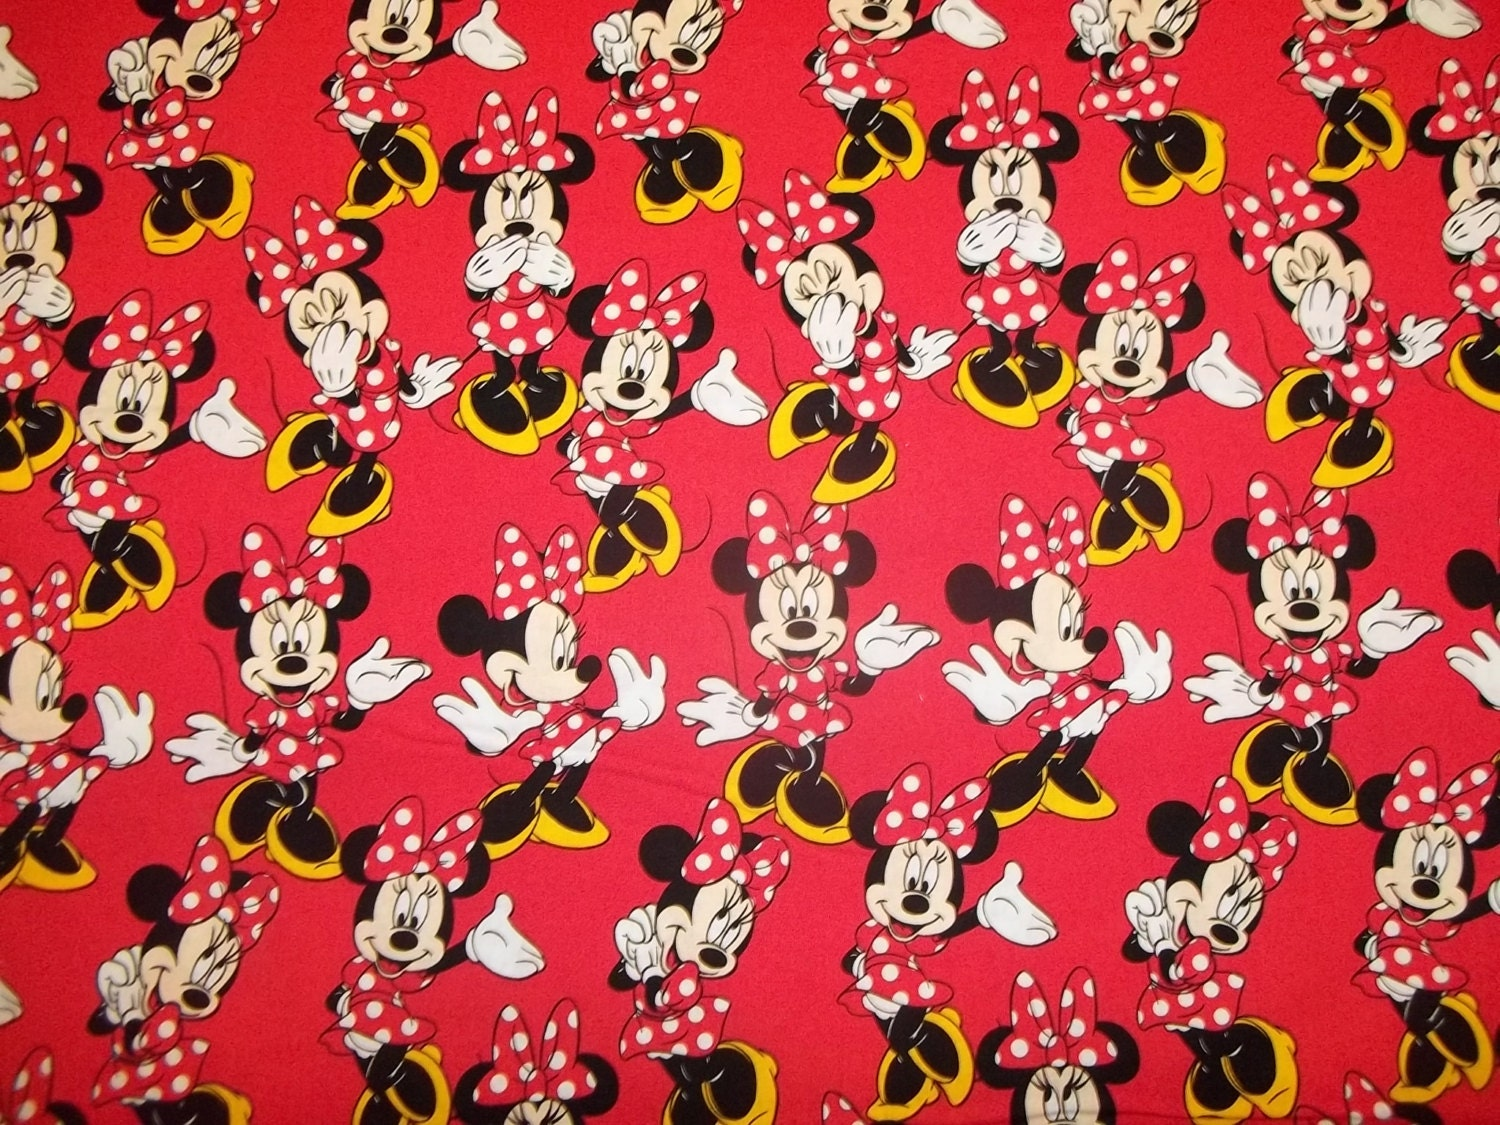 red minnie mouse background